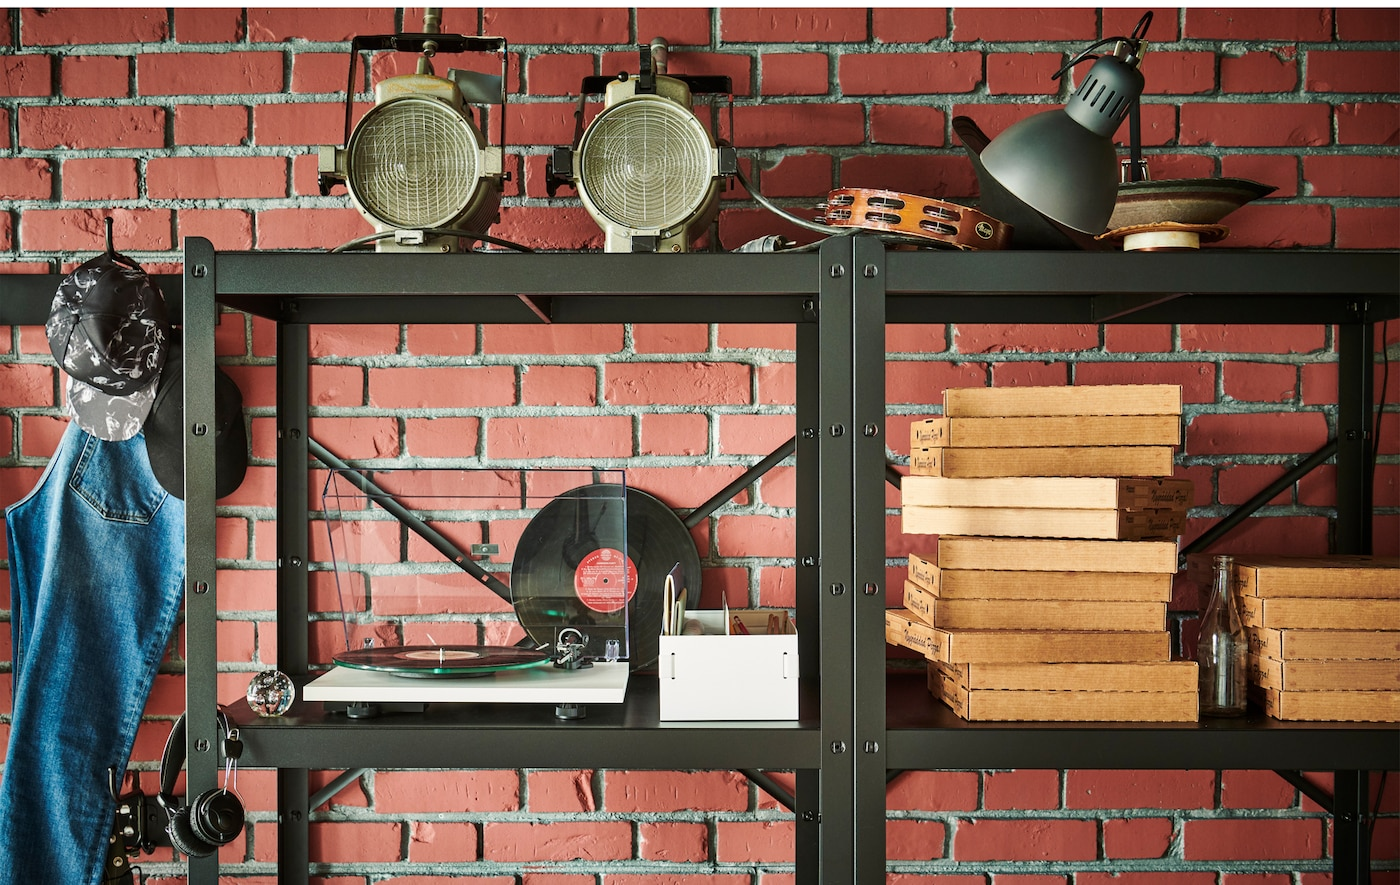 Empty pizza cartons and more conventional stored items alike fit well in the sturdy, spacious BROR shelving units.